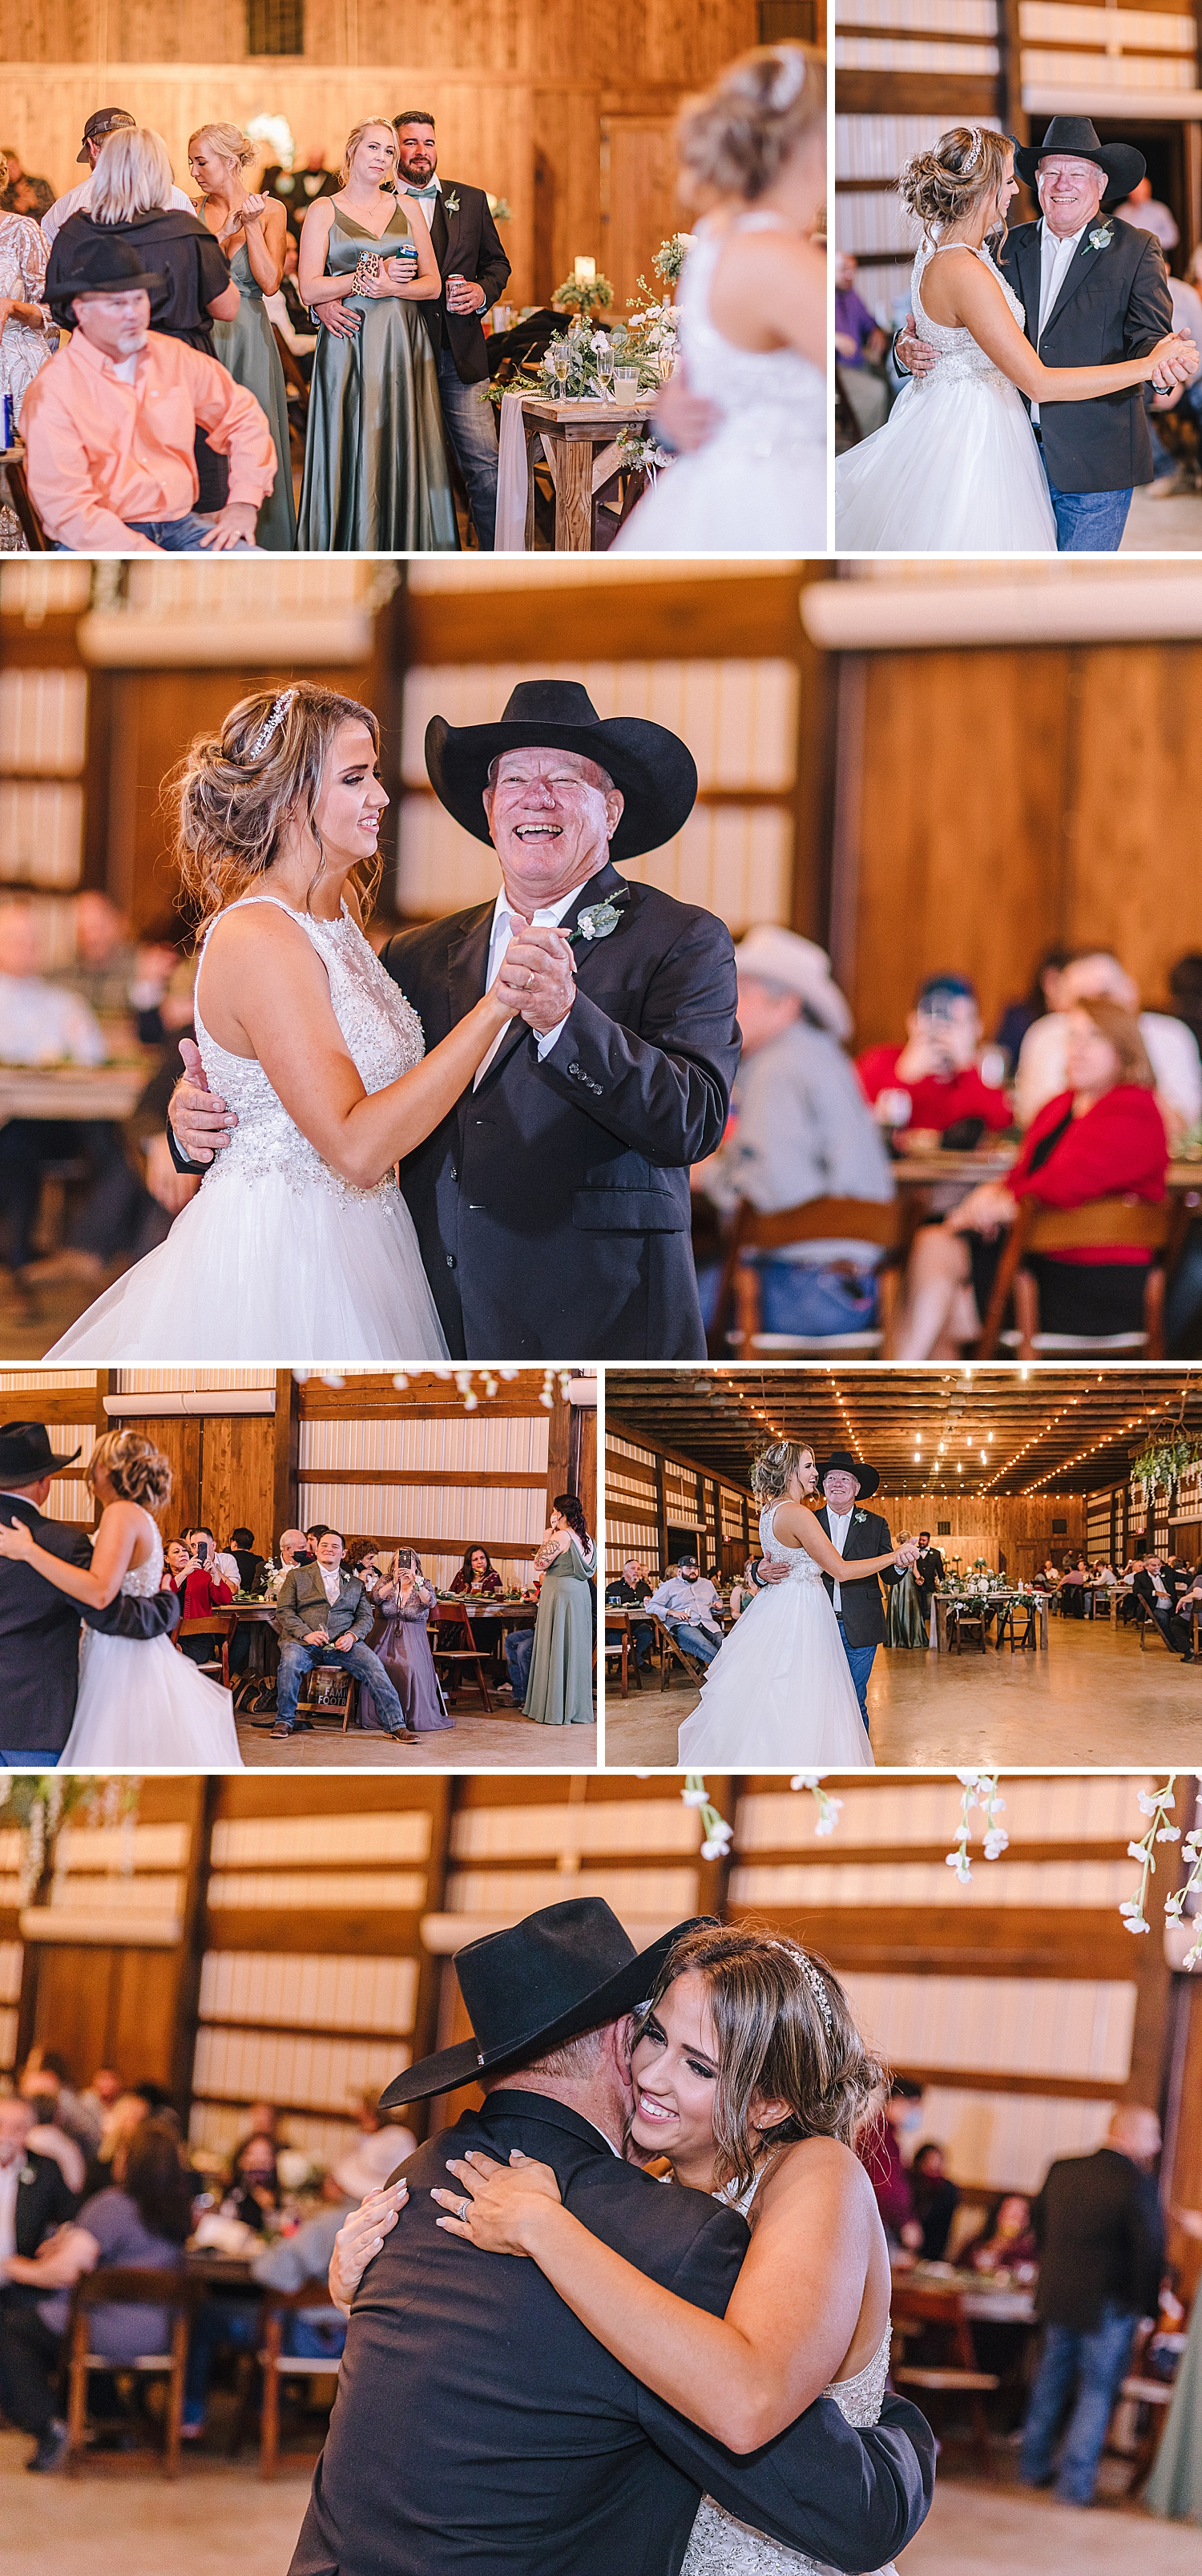 Allen-Farmhaus-New-Braunfels-Wedding-Carly-Barton-Photography_0114.jpg